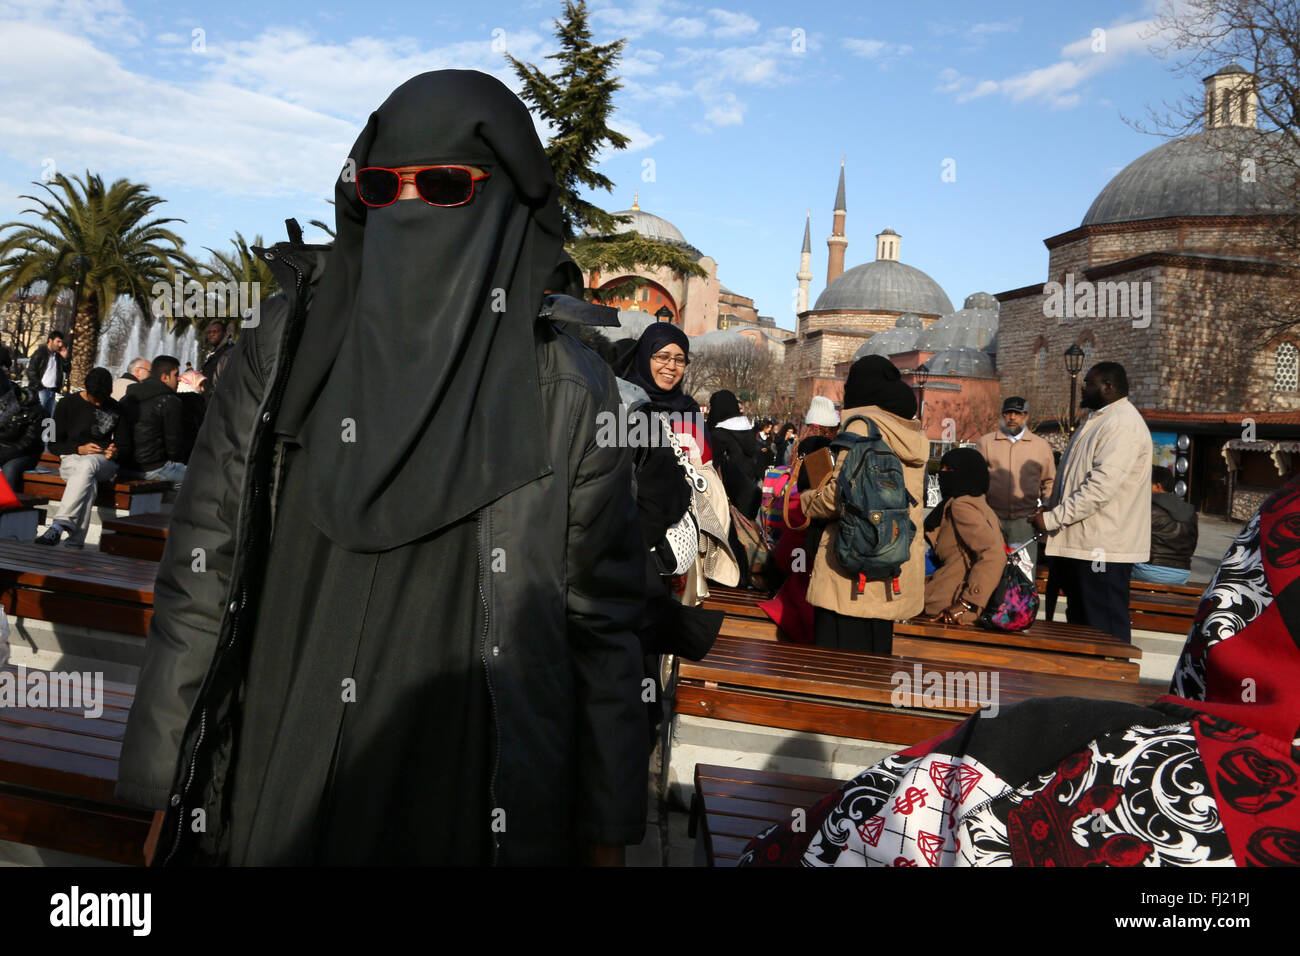 A woman wears niqab with red sunglasses in Istanbul - Stock Image